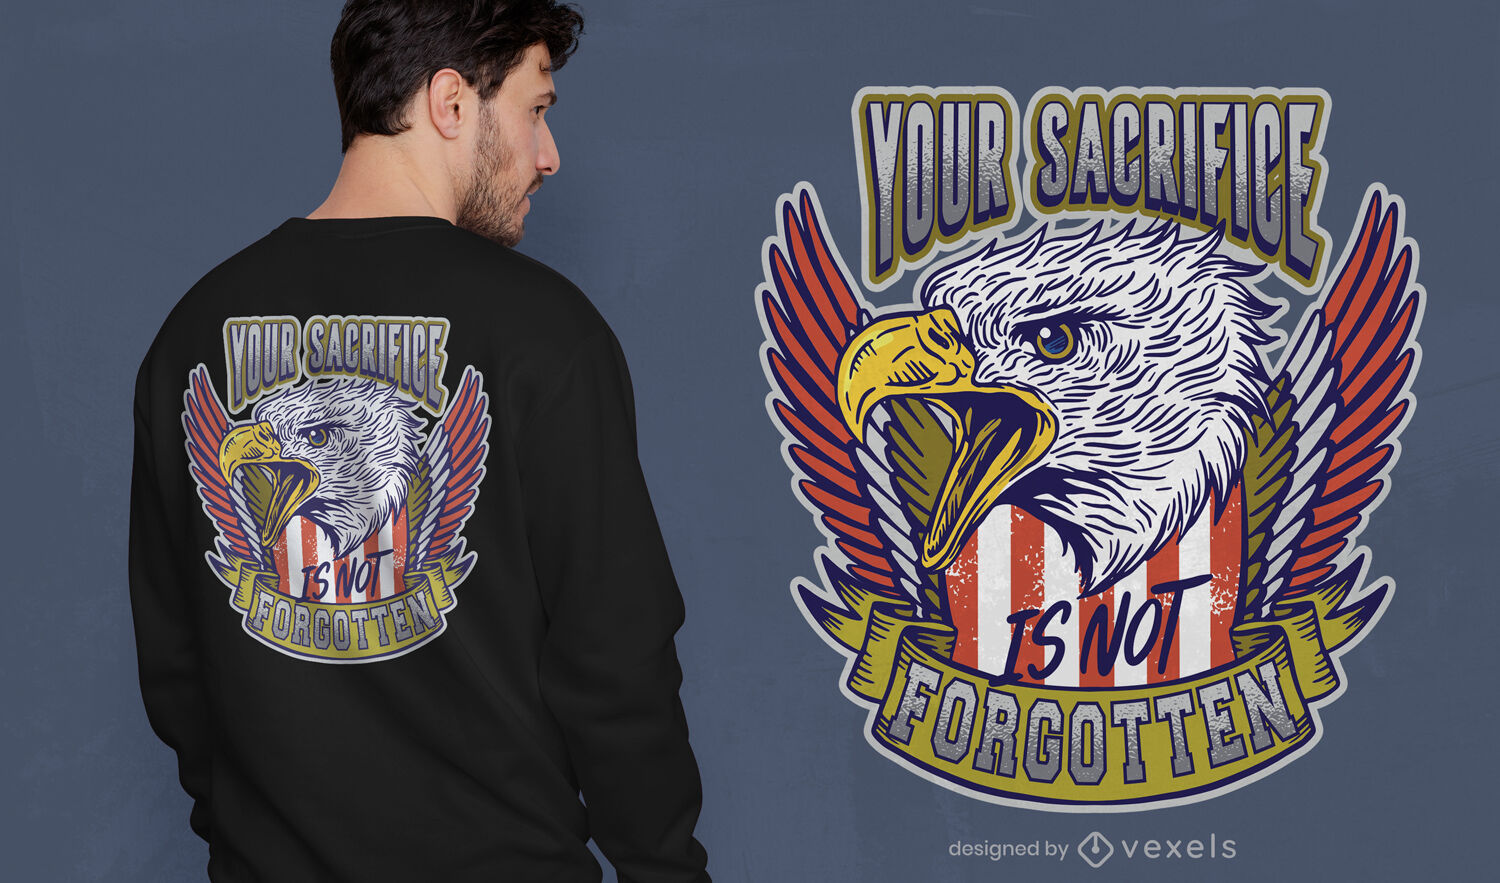 Veterans day eagle quote t-shirt design